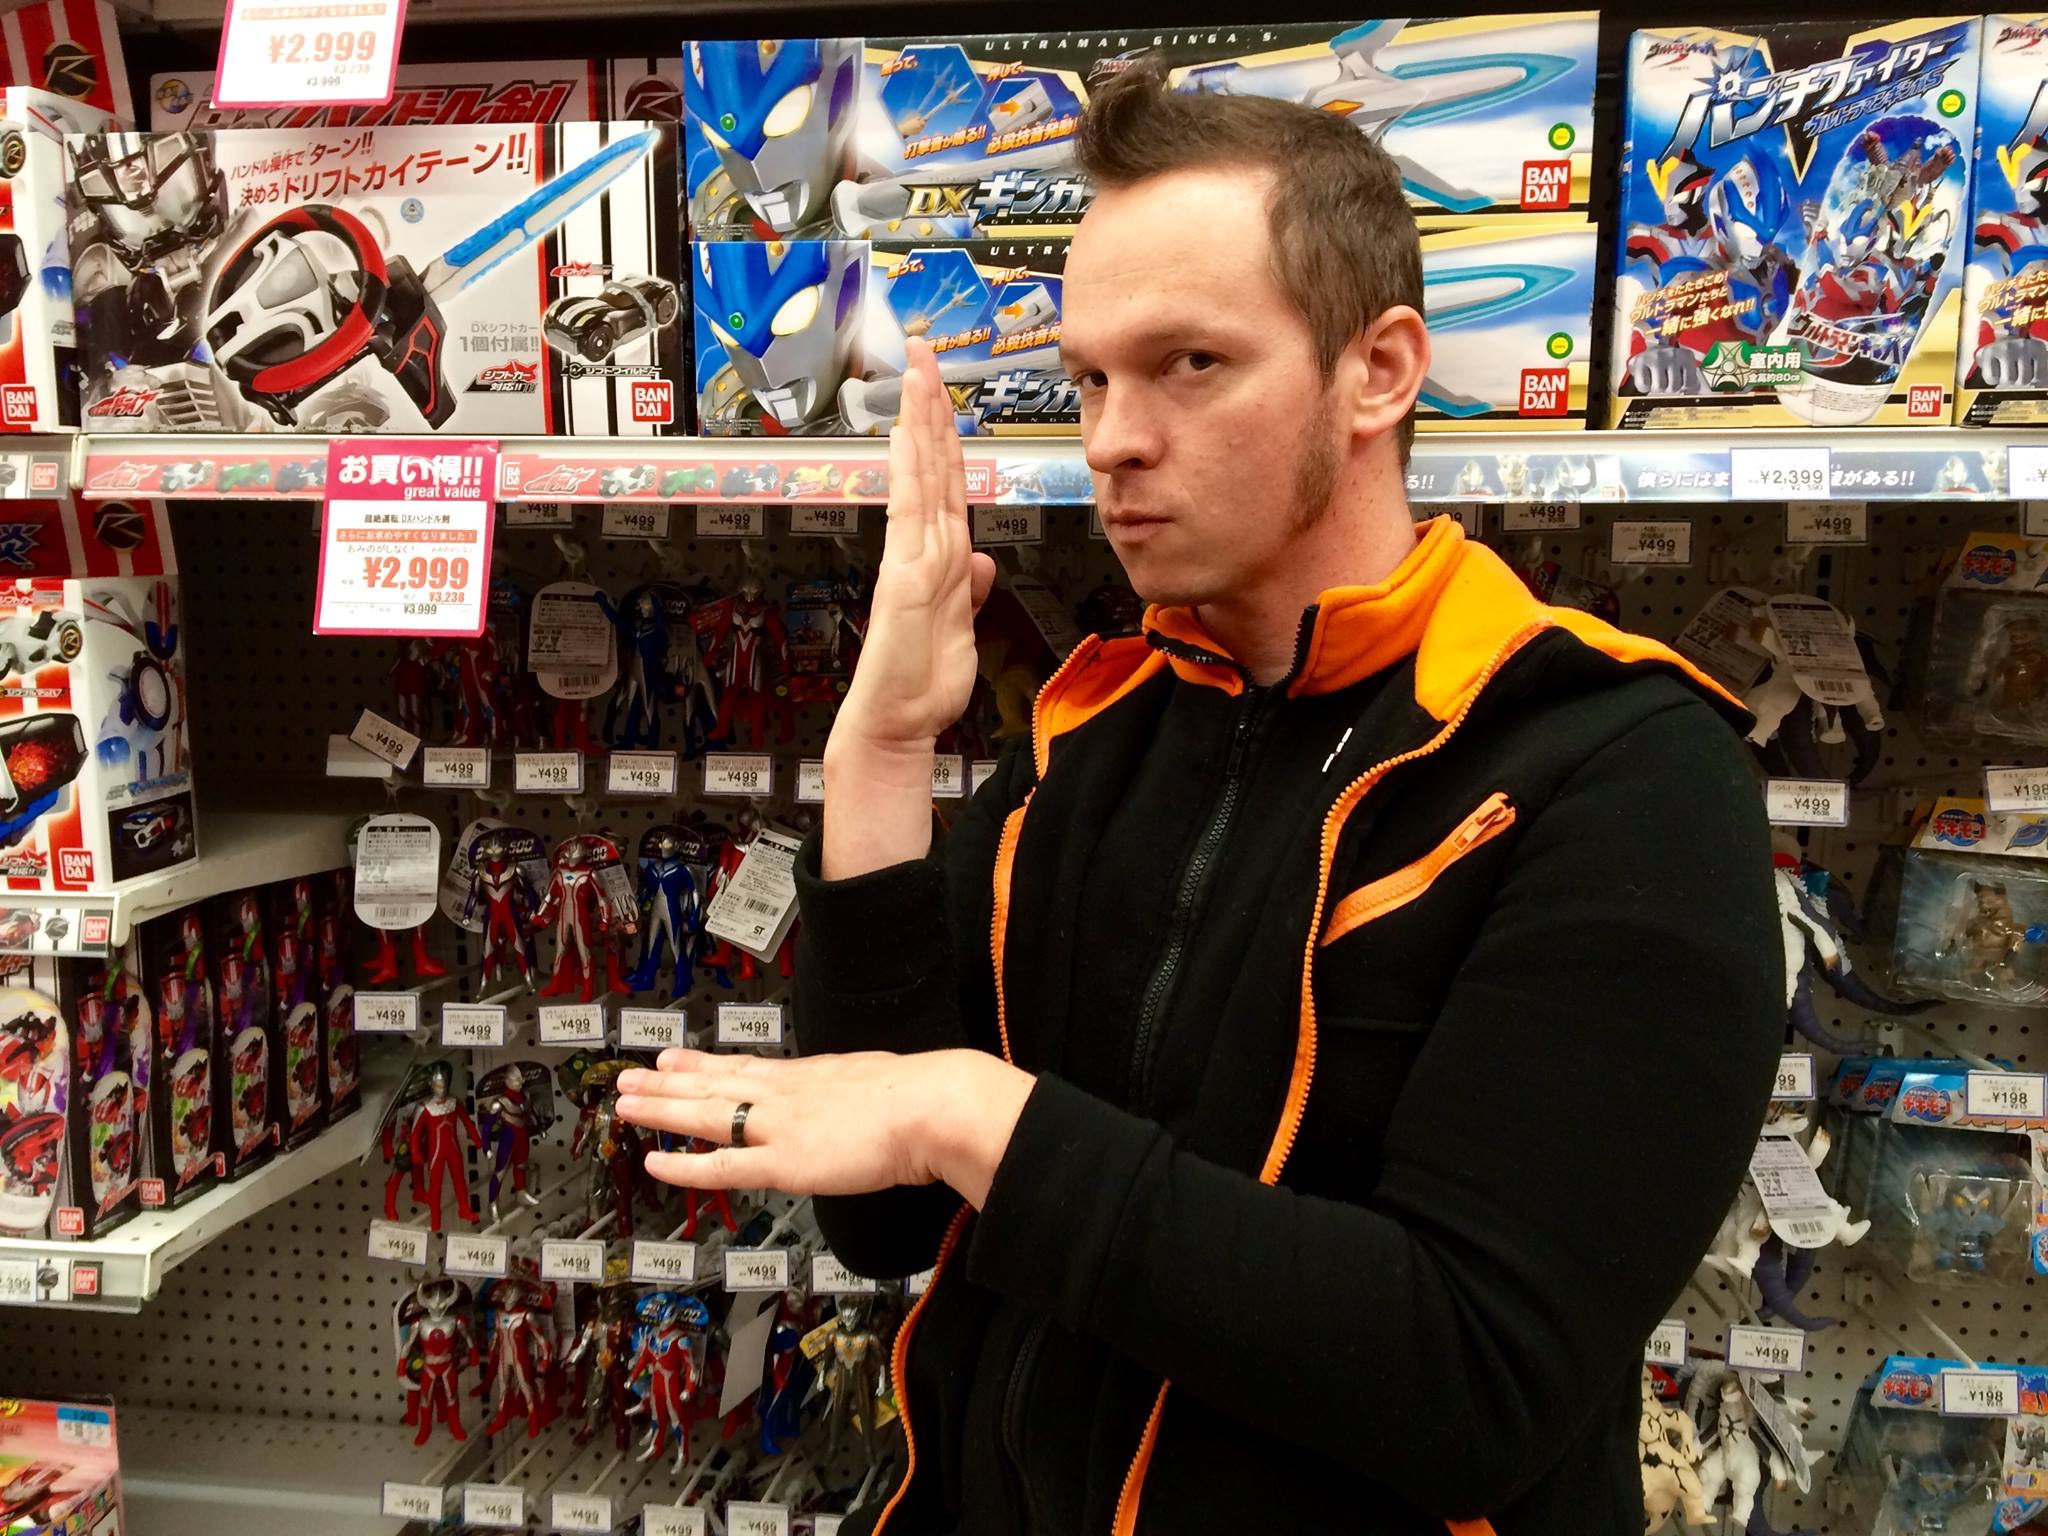 Gaz is in Japan standing in front of a display of Ultraman Toys